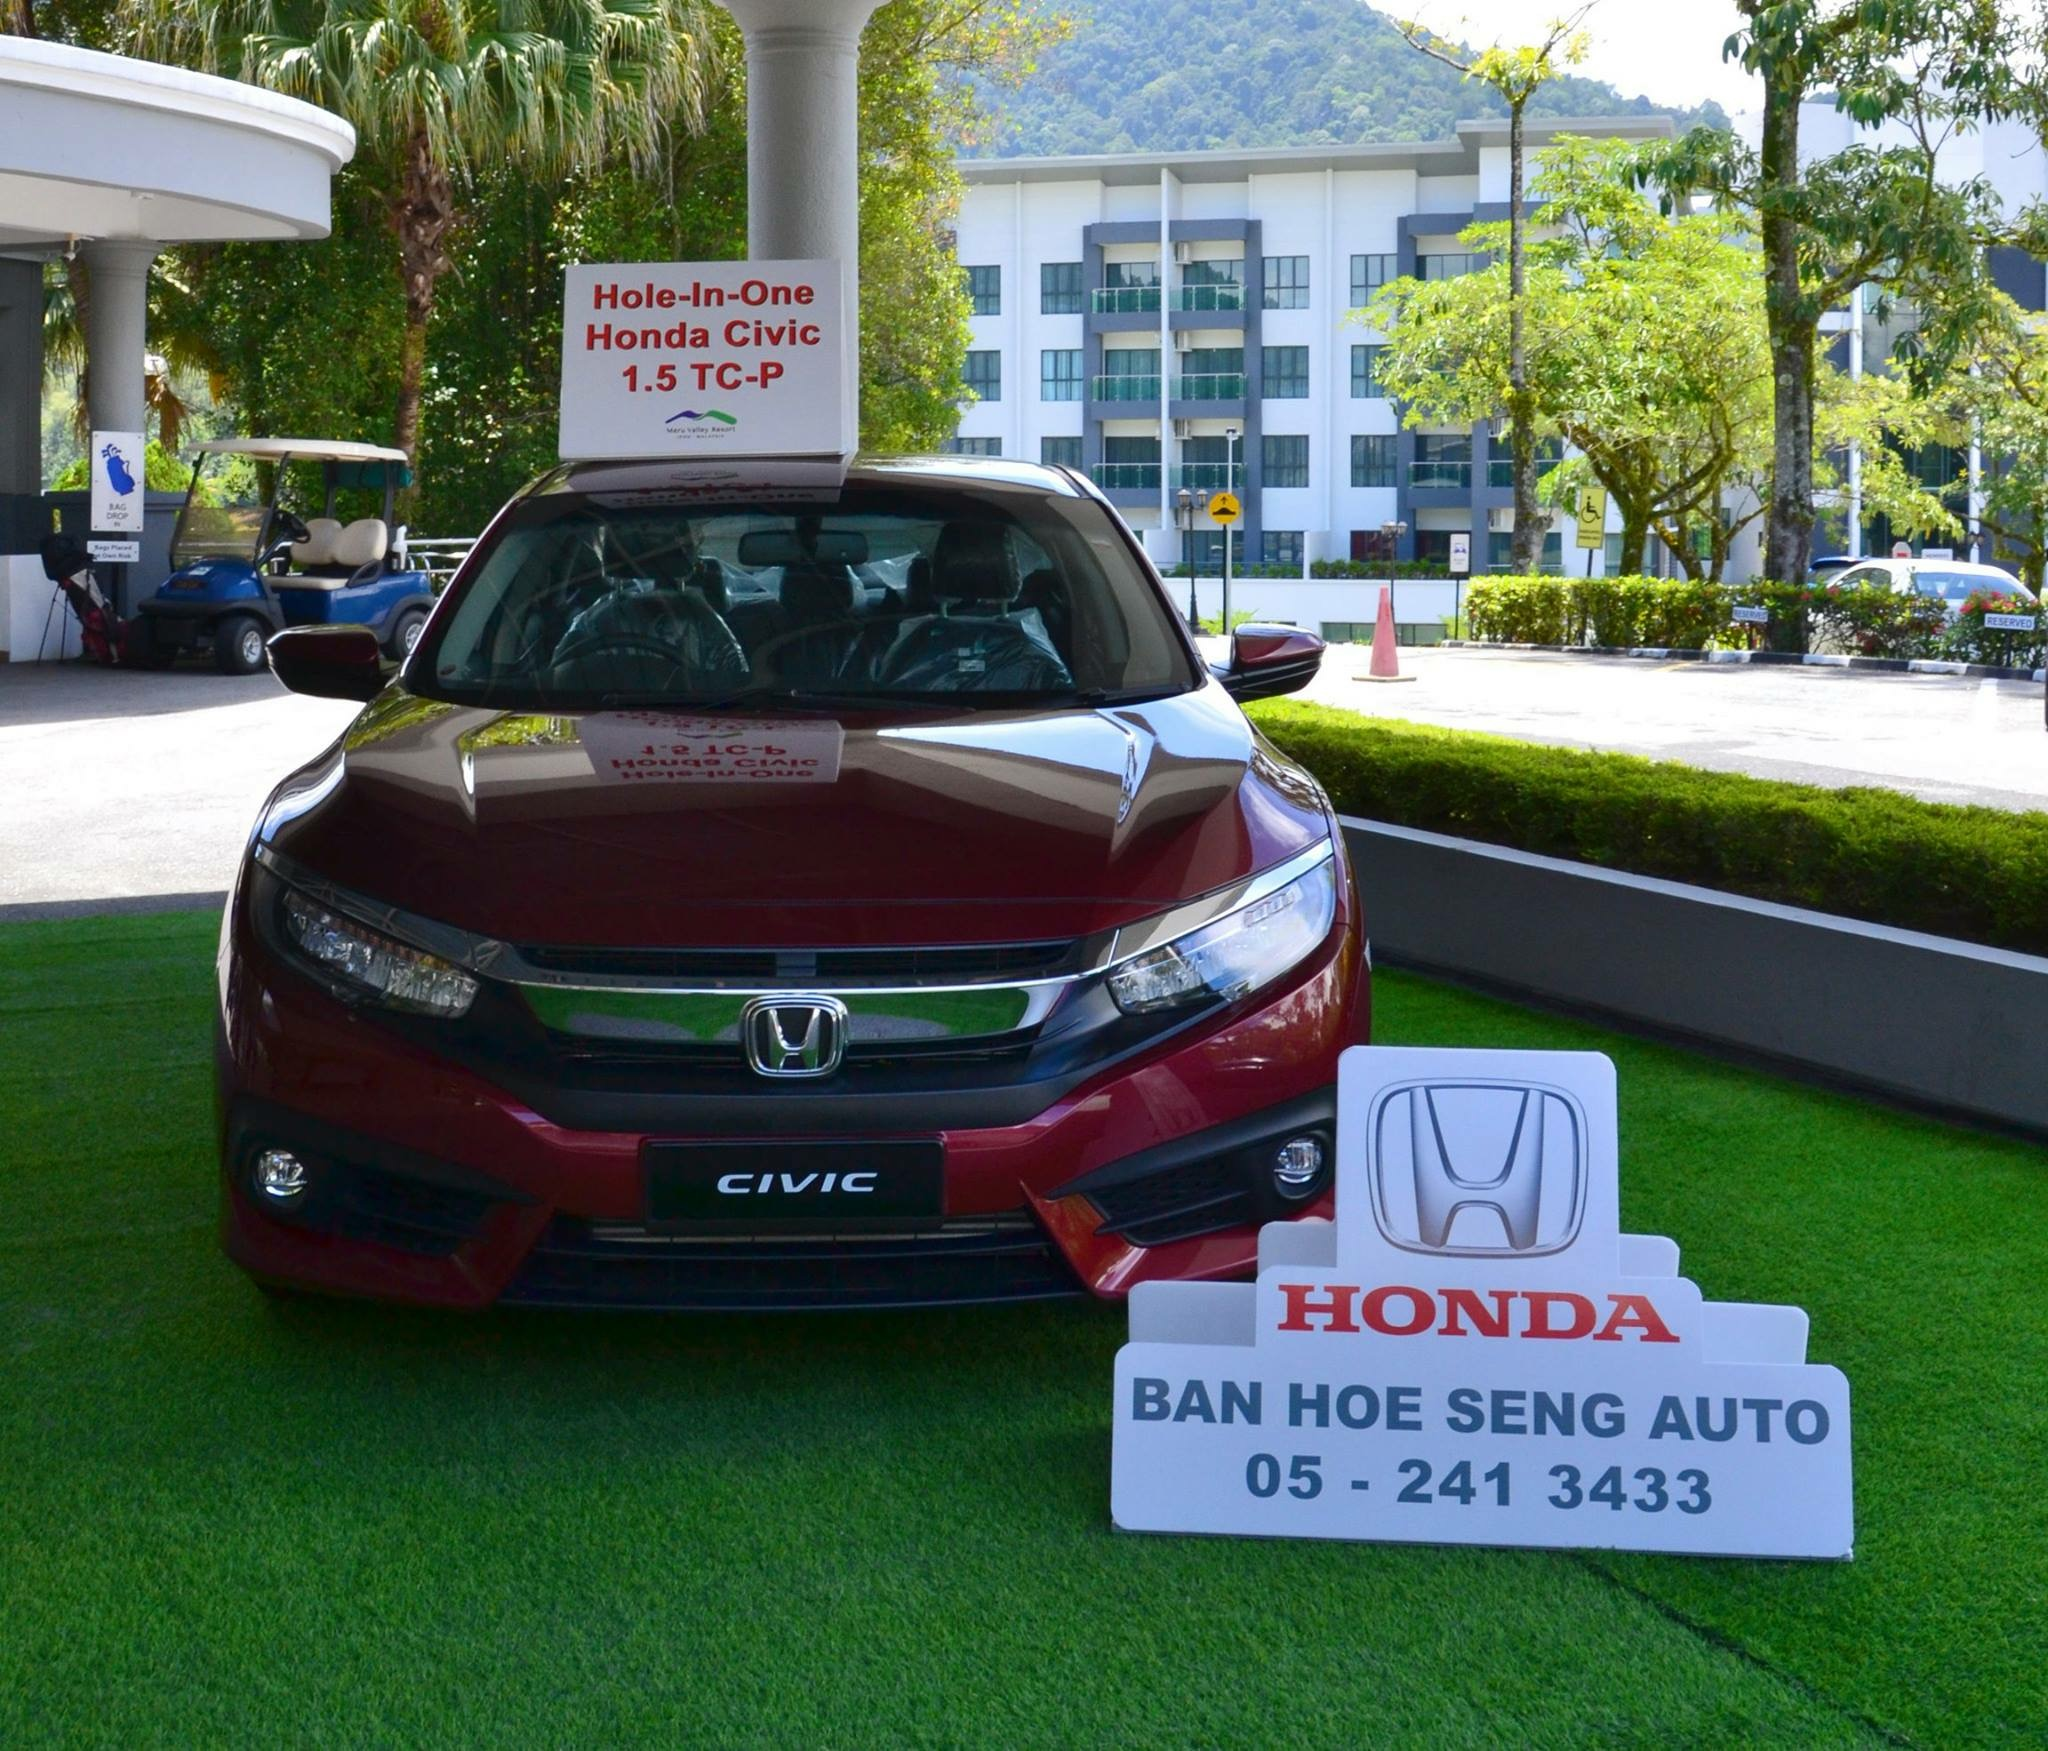 Honda Civic Hole in One Prize at Perak Amateur Open